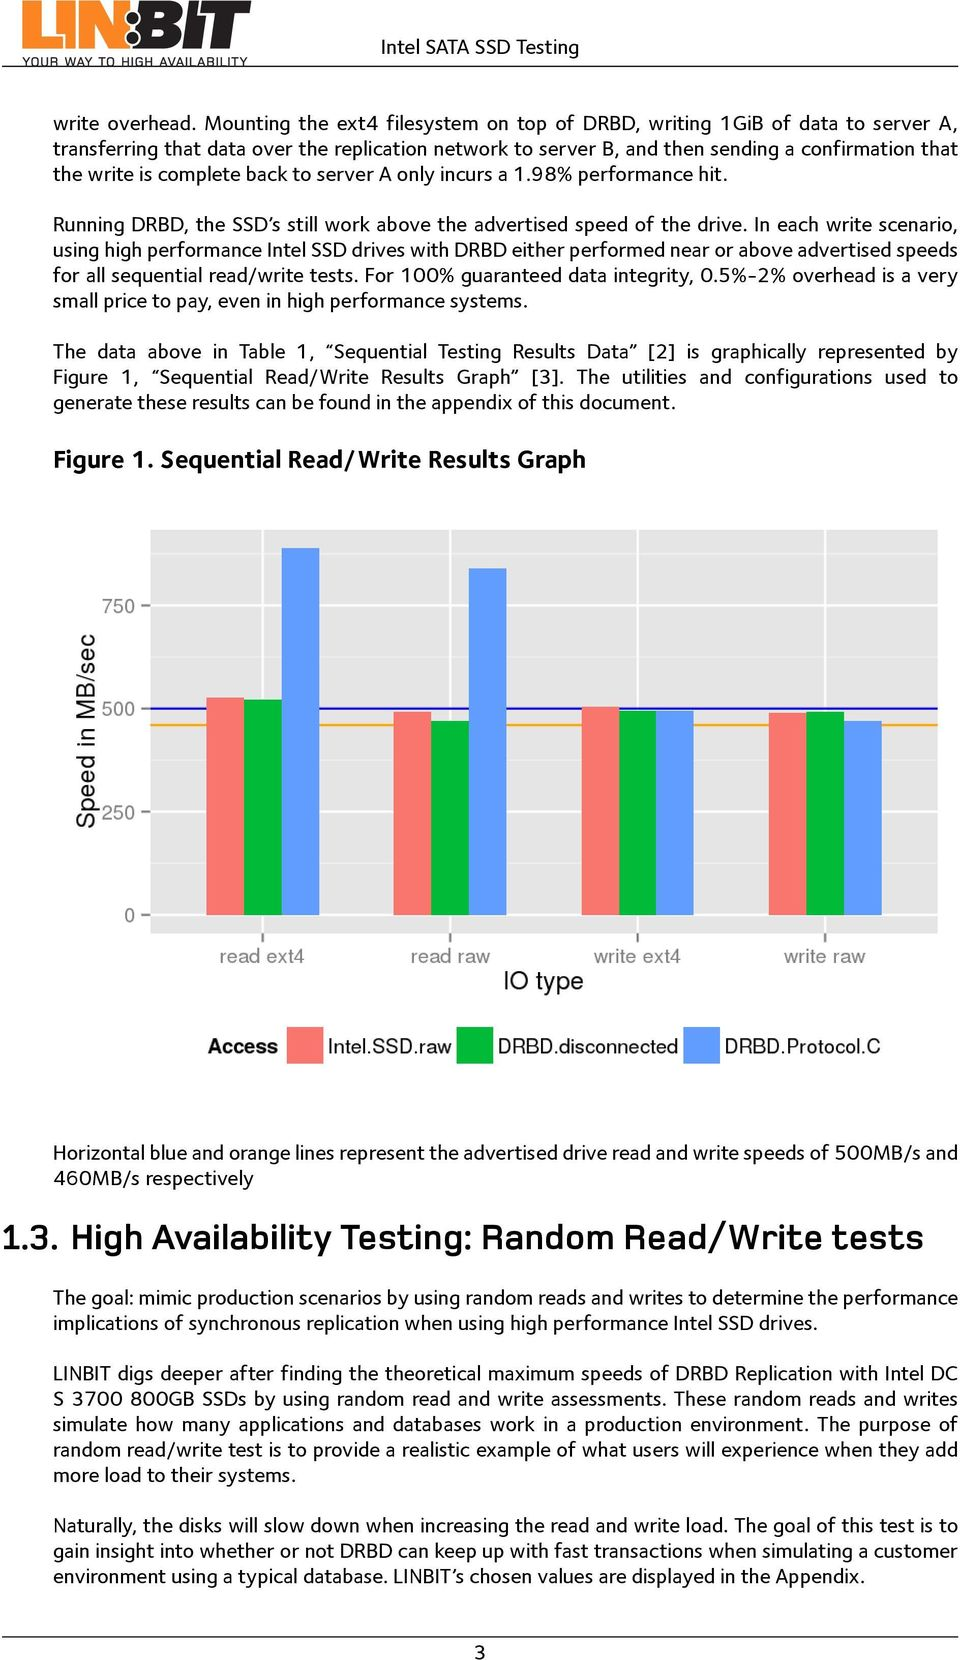 Intel SATA SSD Testing: Synchronous High Availability and